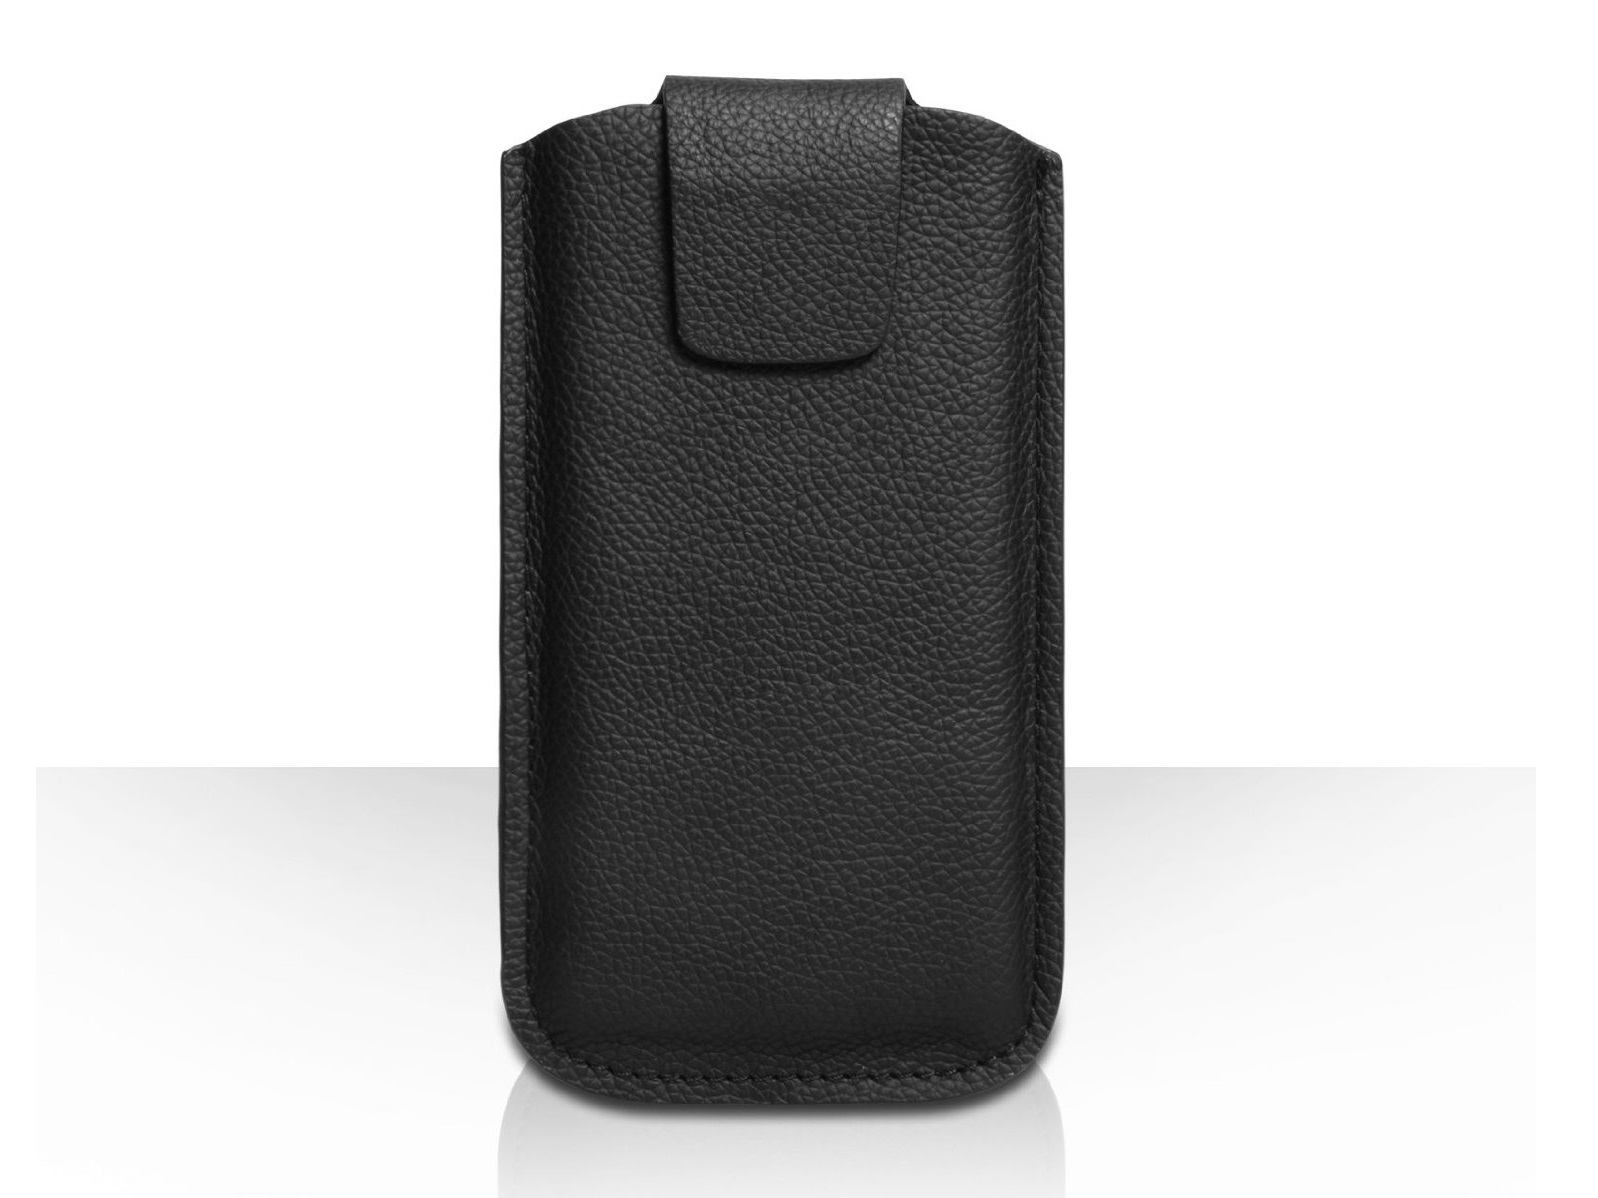 Caseflex Black Genuine Leather Pouch